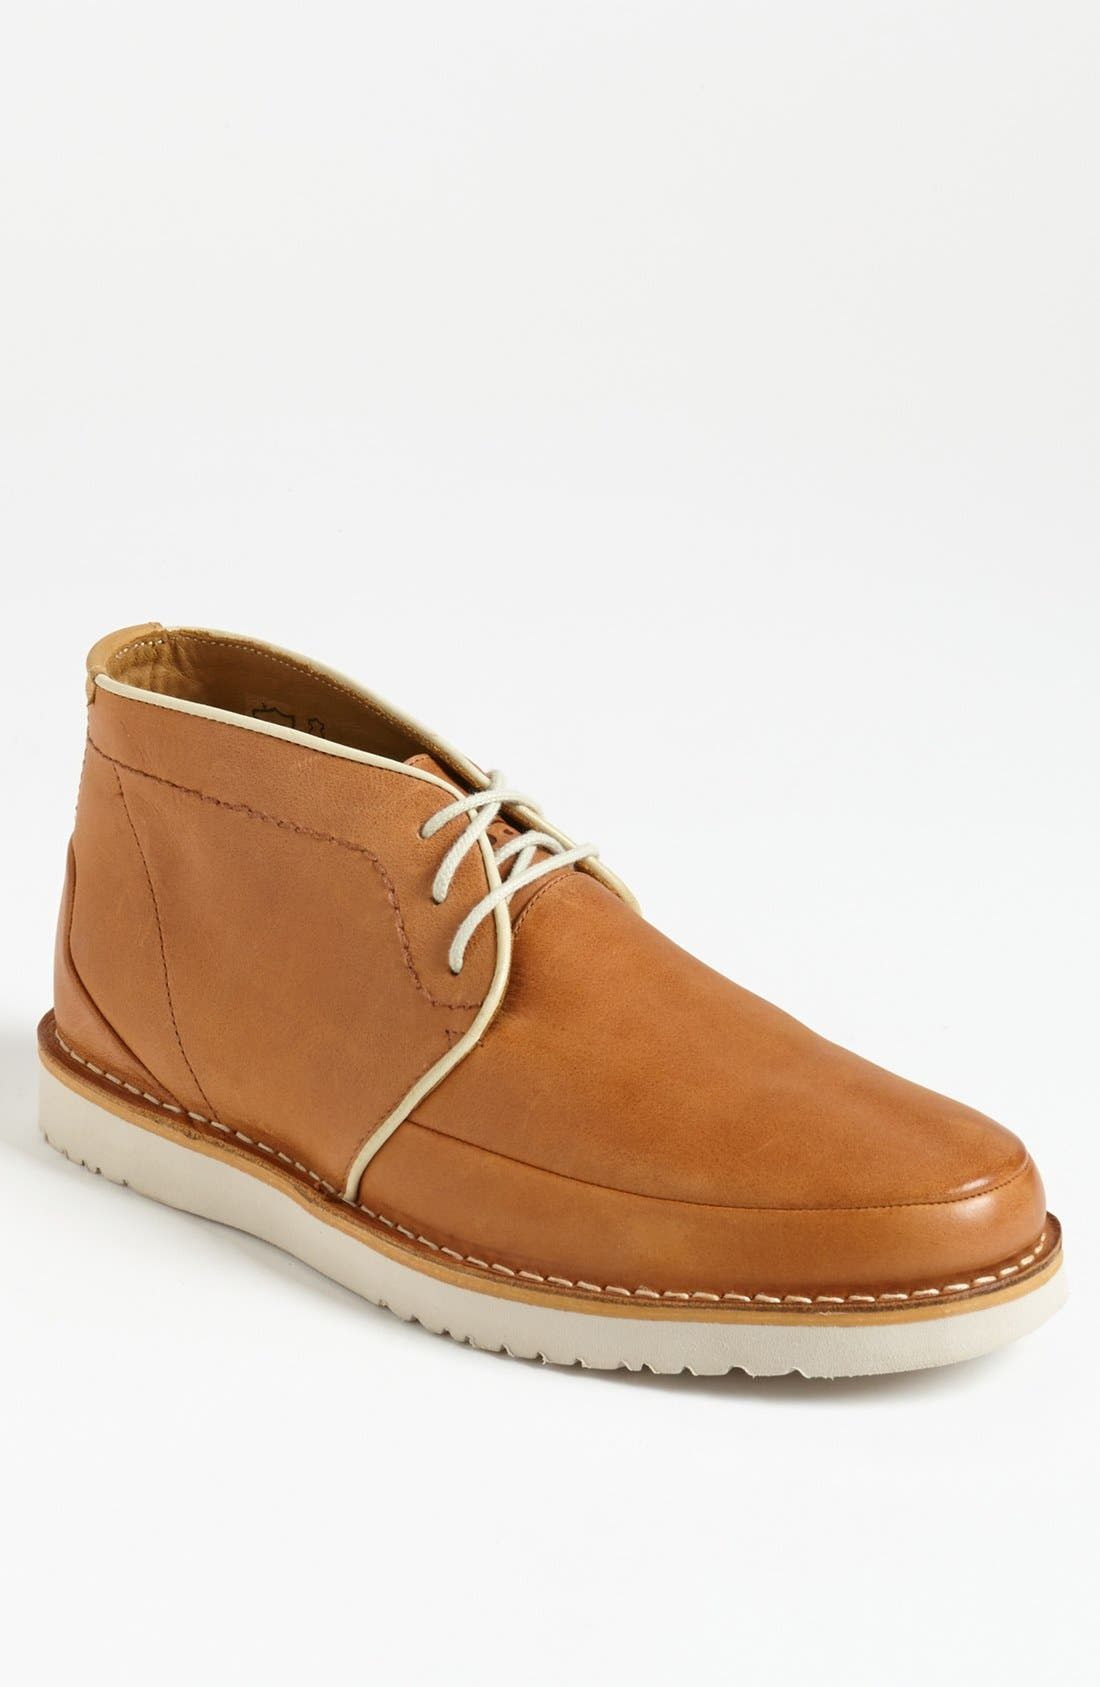 Alternate Image 1 Selected - J SHOES 'Selby' Chukka Boot